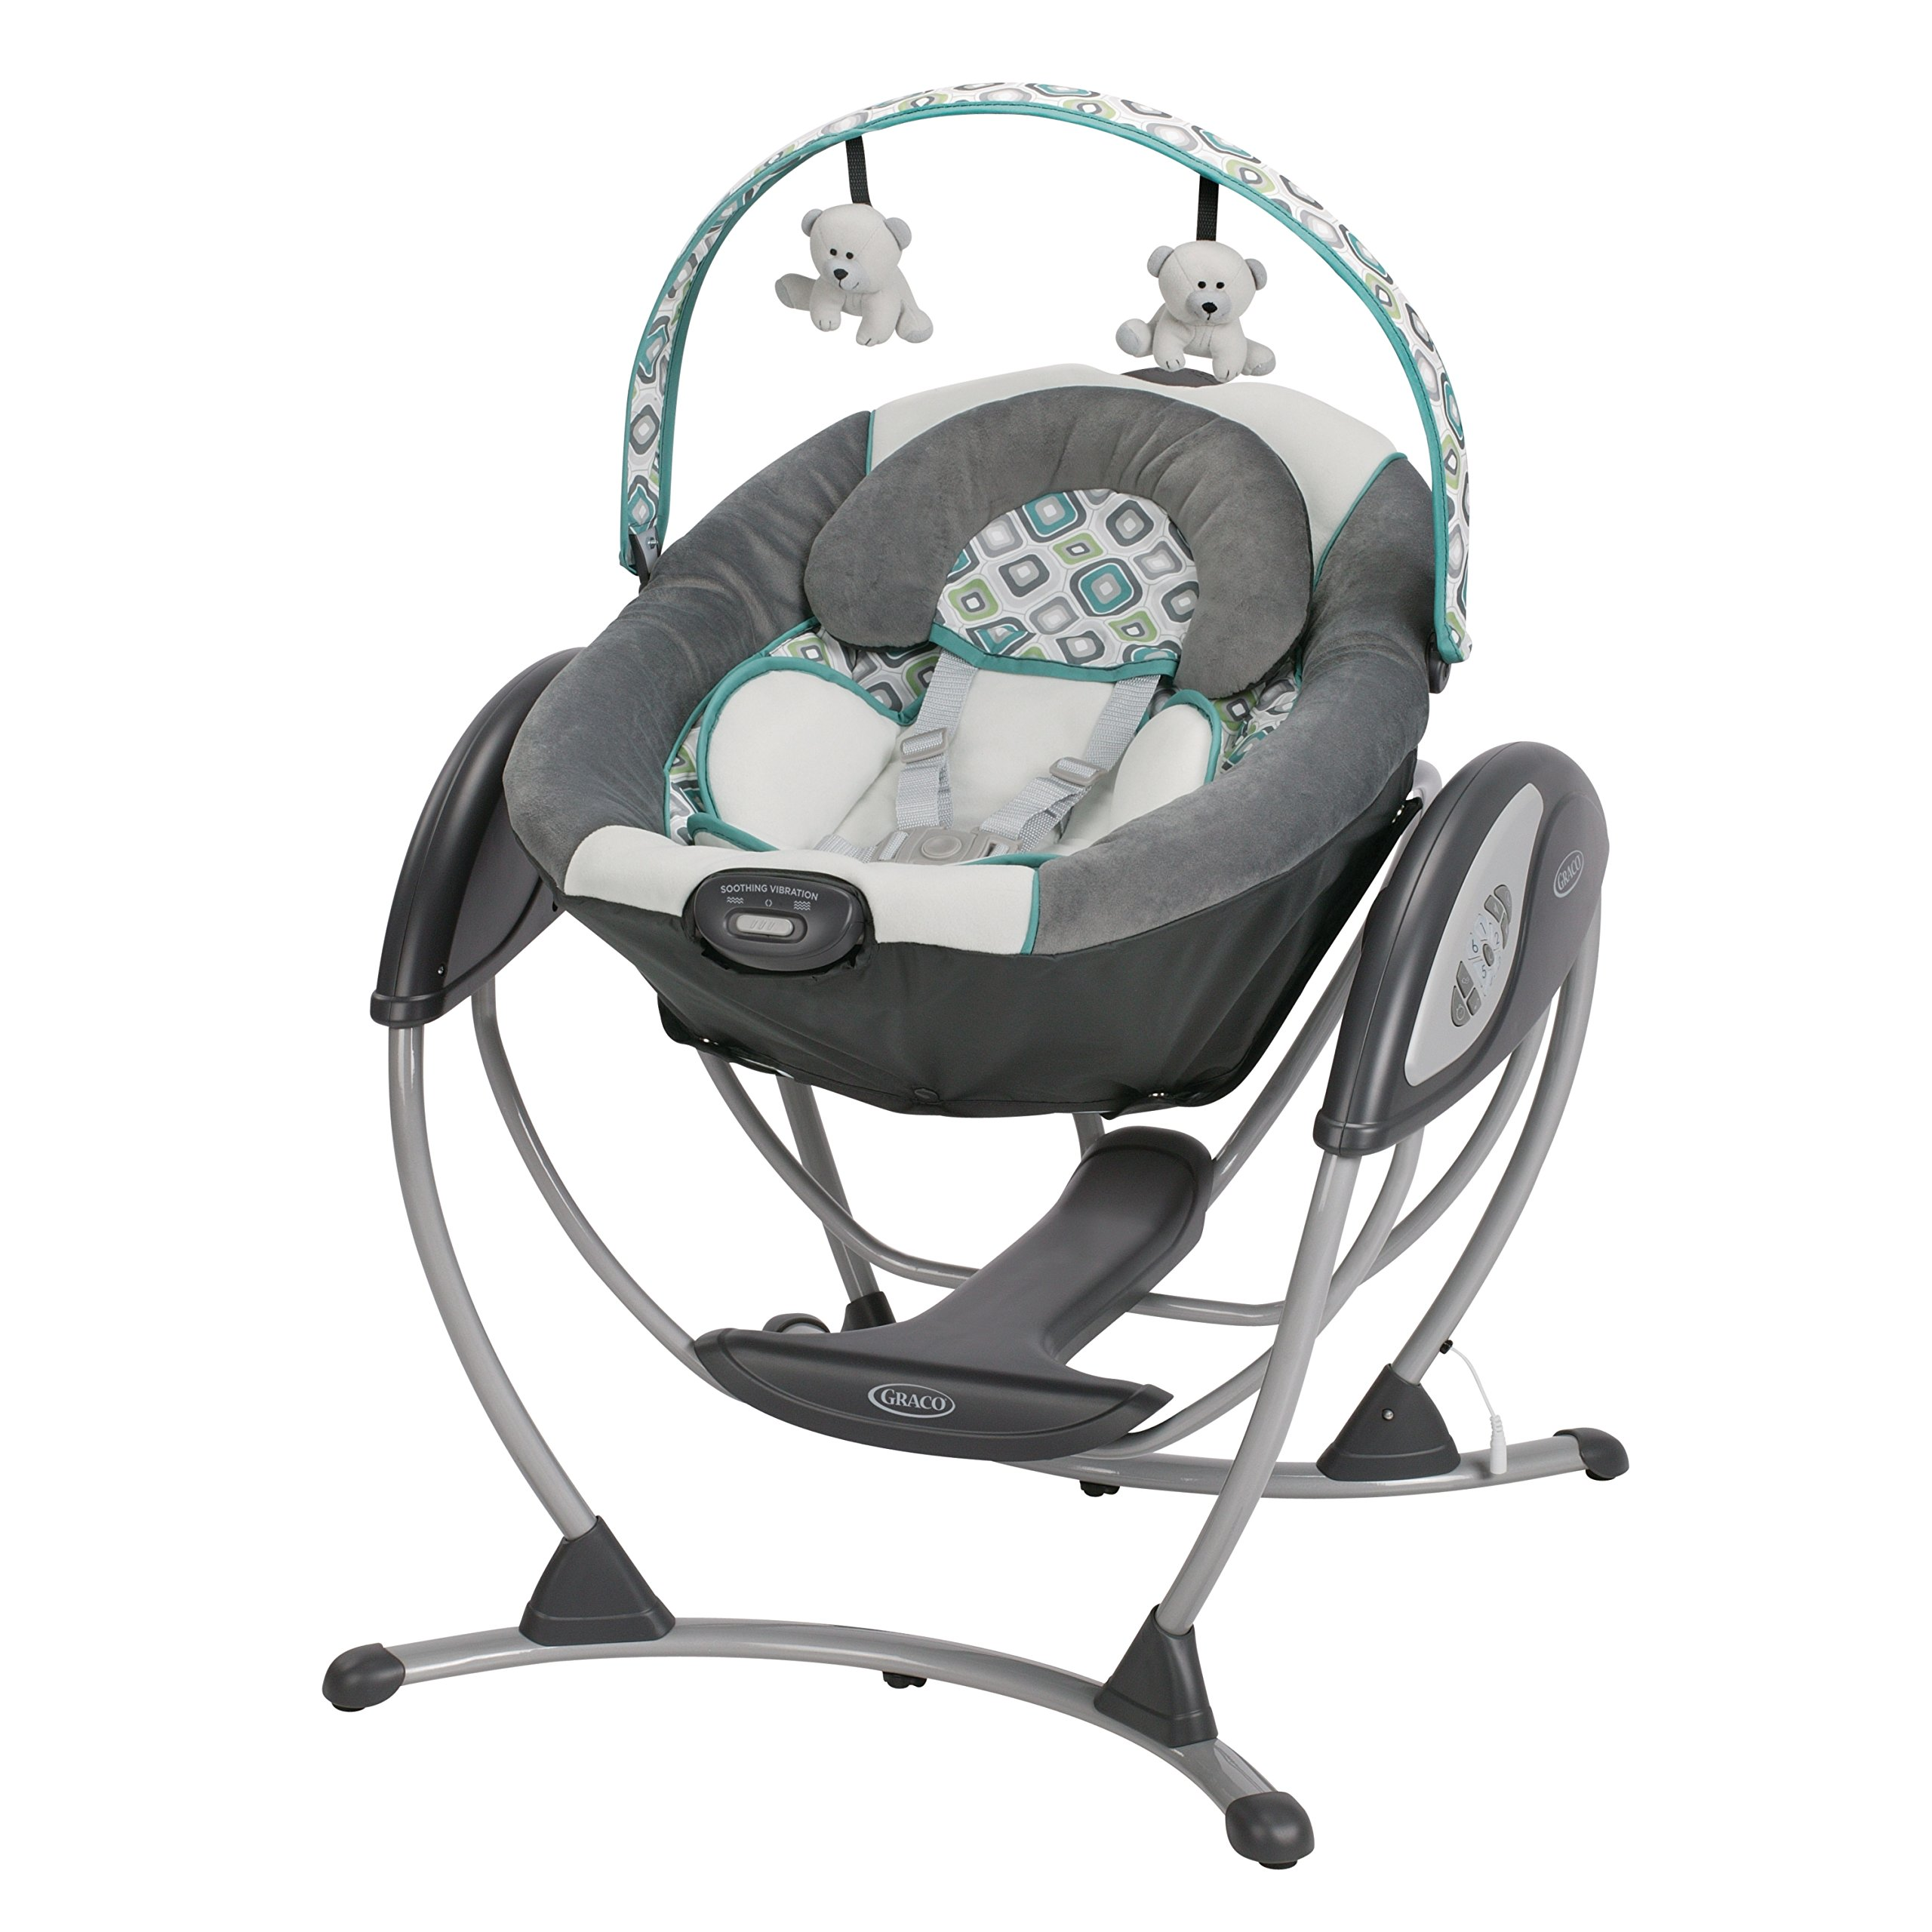 Graco Glider Gliding Swing Affinia